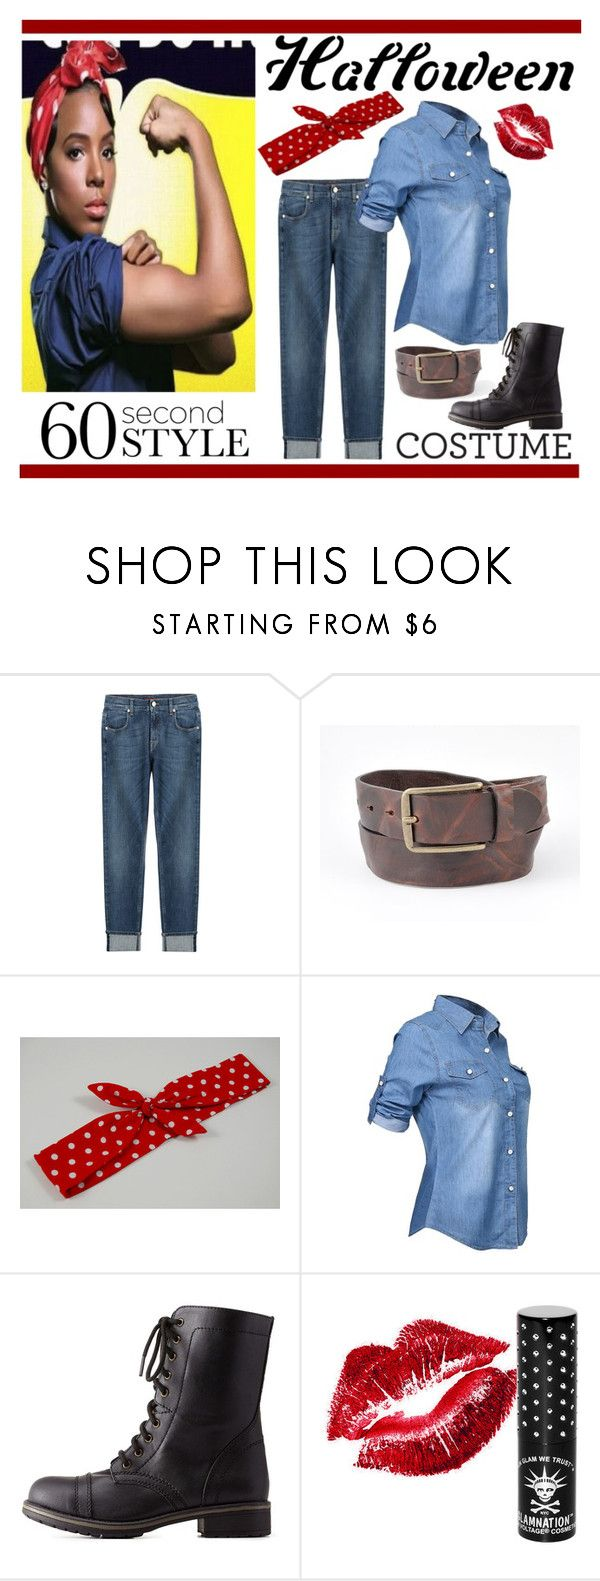 """Rosie The Riveter"" by travlingal ❤ liked on Polyvore featuring 7 For All Mankind, Charlotte Russe, Manic Panic, polyvoreeditorial, diycostume, 60secondstyle and Halloween2015"